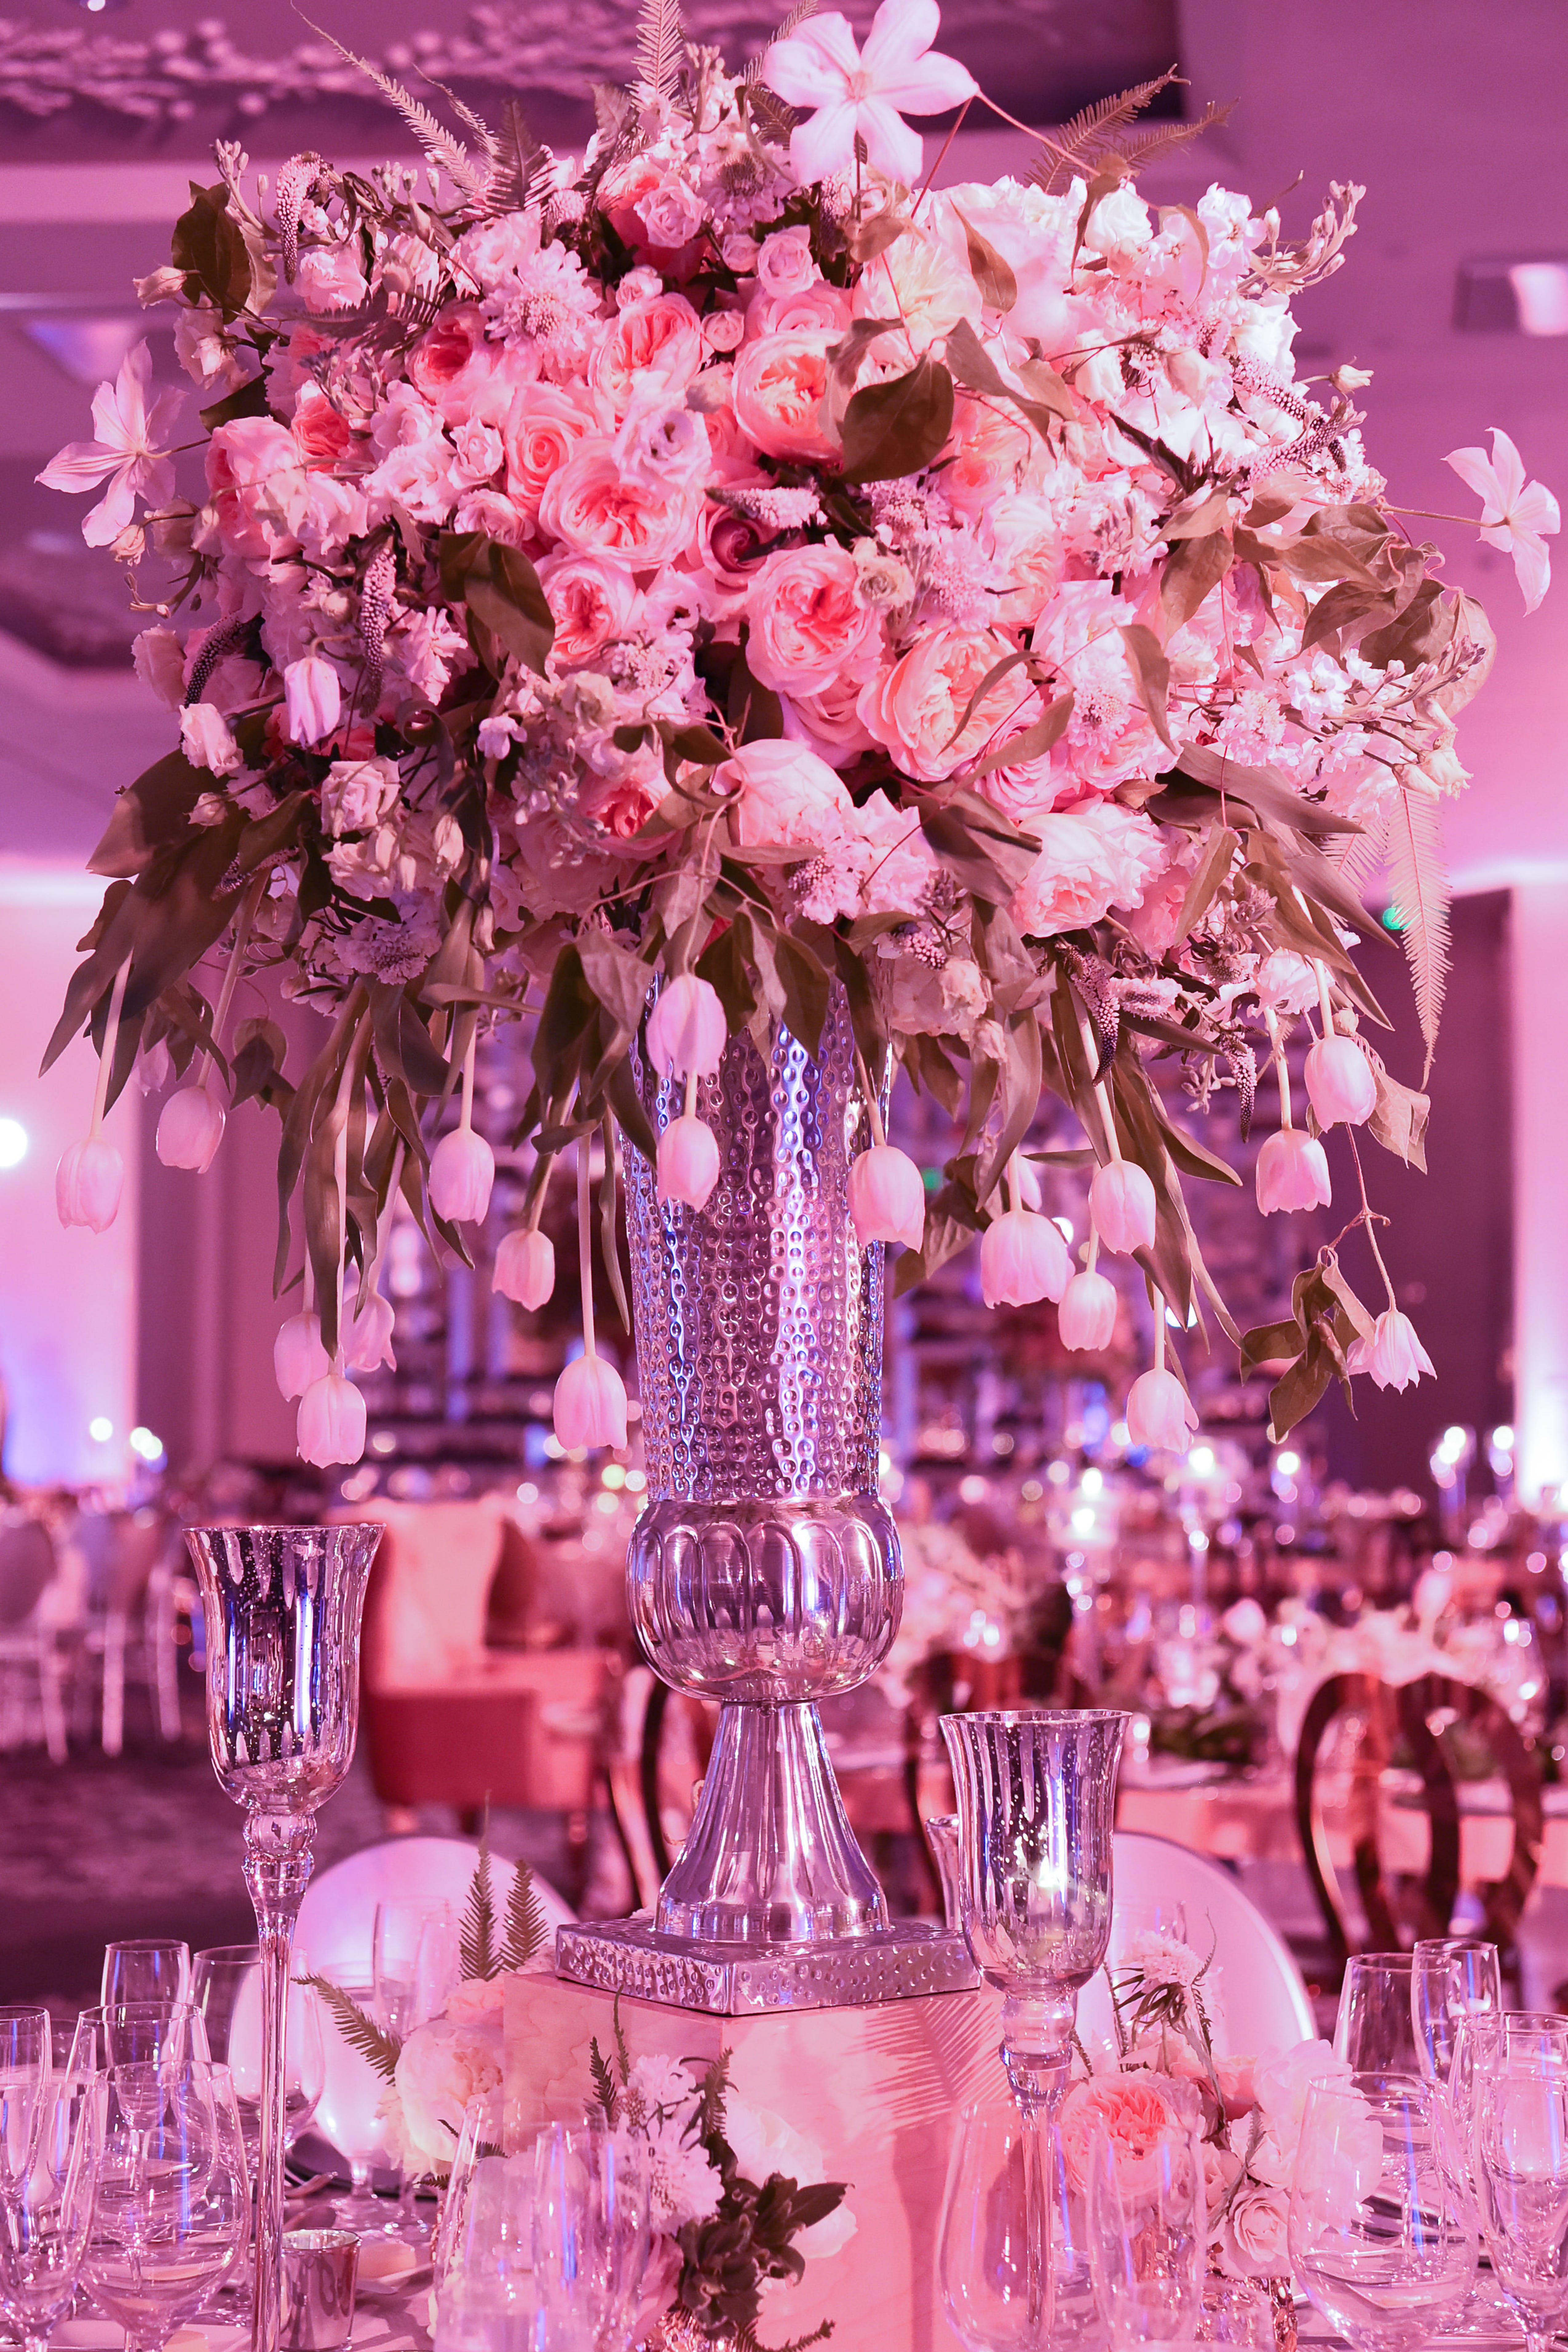 Romantic St Regis Bal Harbour Wedding Party Rentals And Decor By Gilded Group Decor Miami Event Design Miami Event D Wedding Decorations Event Decor Decor